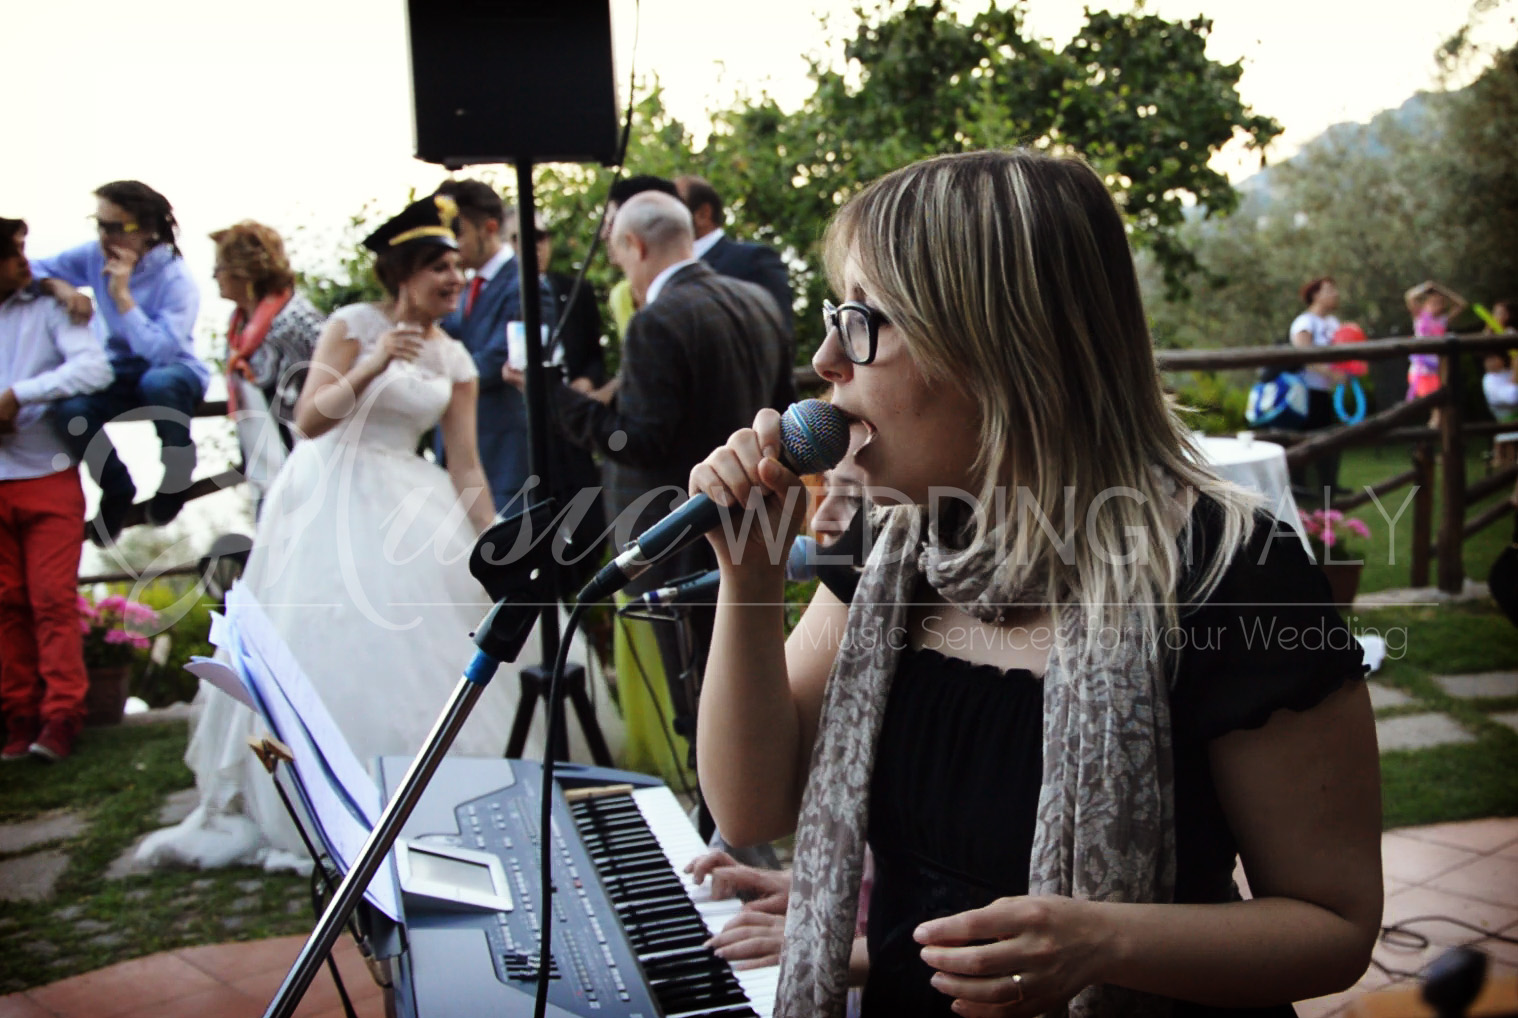 Wedding party band Italy, live musc, music wedding italy